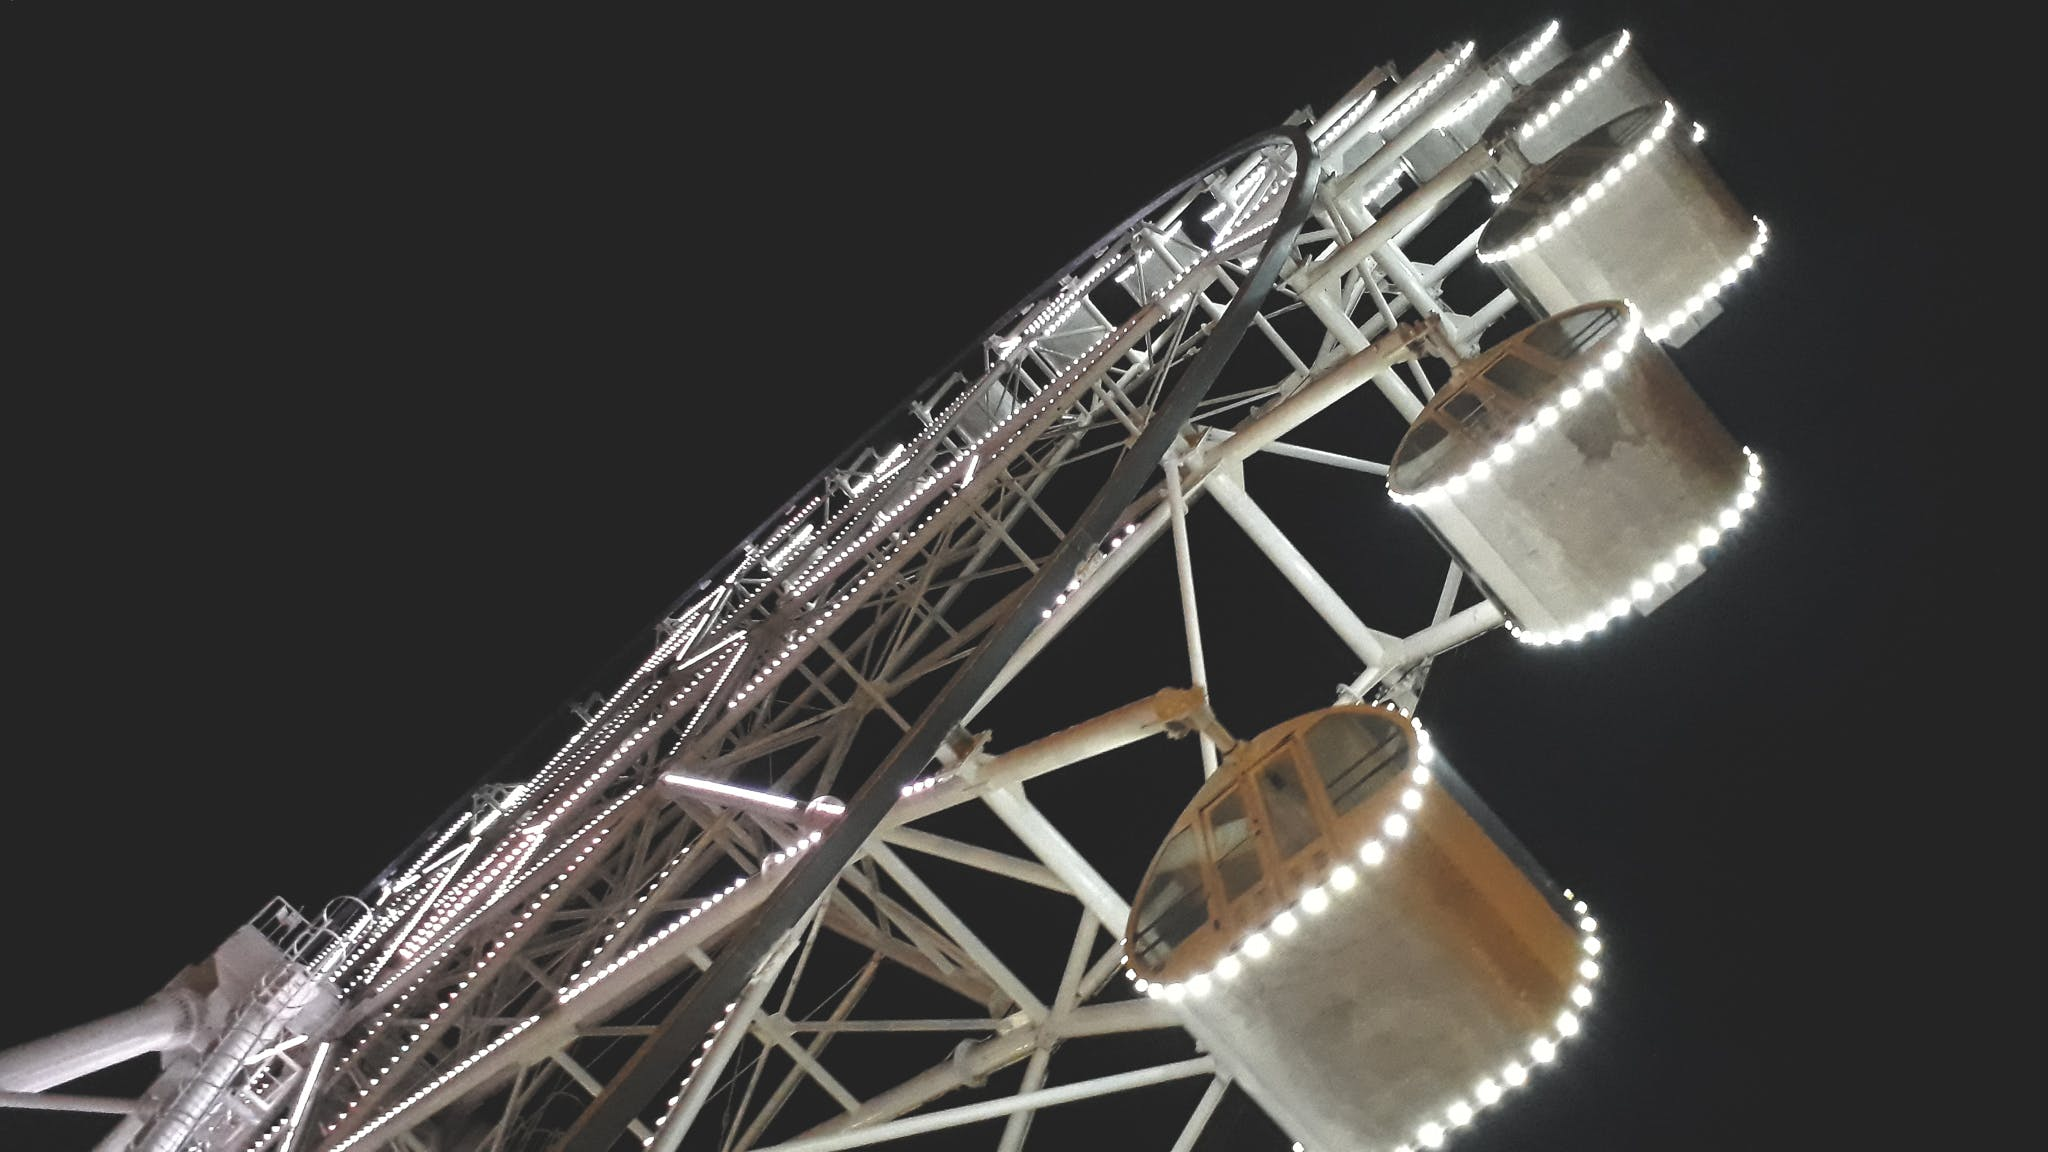 Free stock photo of ferris wheel, night, night lights